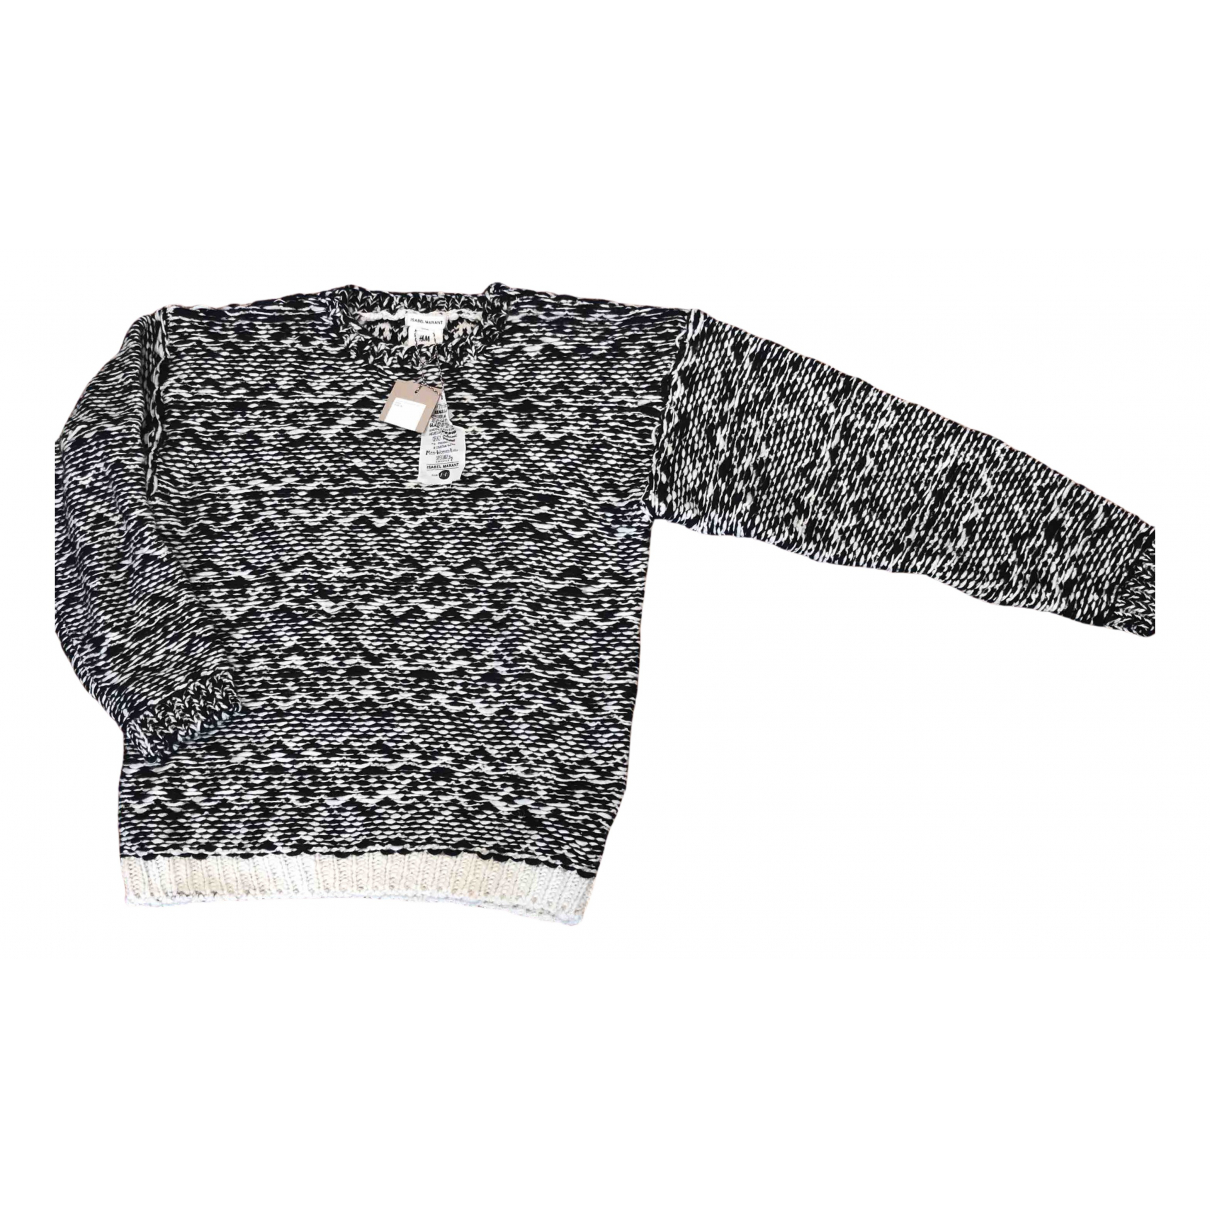 Isabel Marant Pour H&m \N Pullover.Westen.Sweatshirts  in  Bunt Wolle